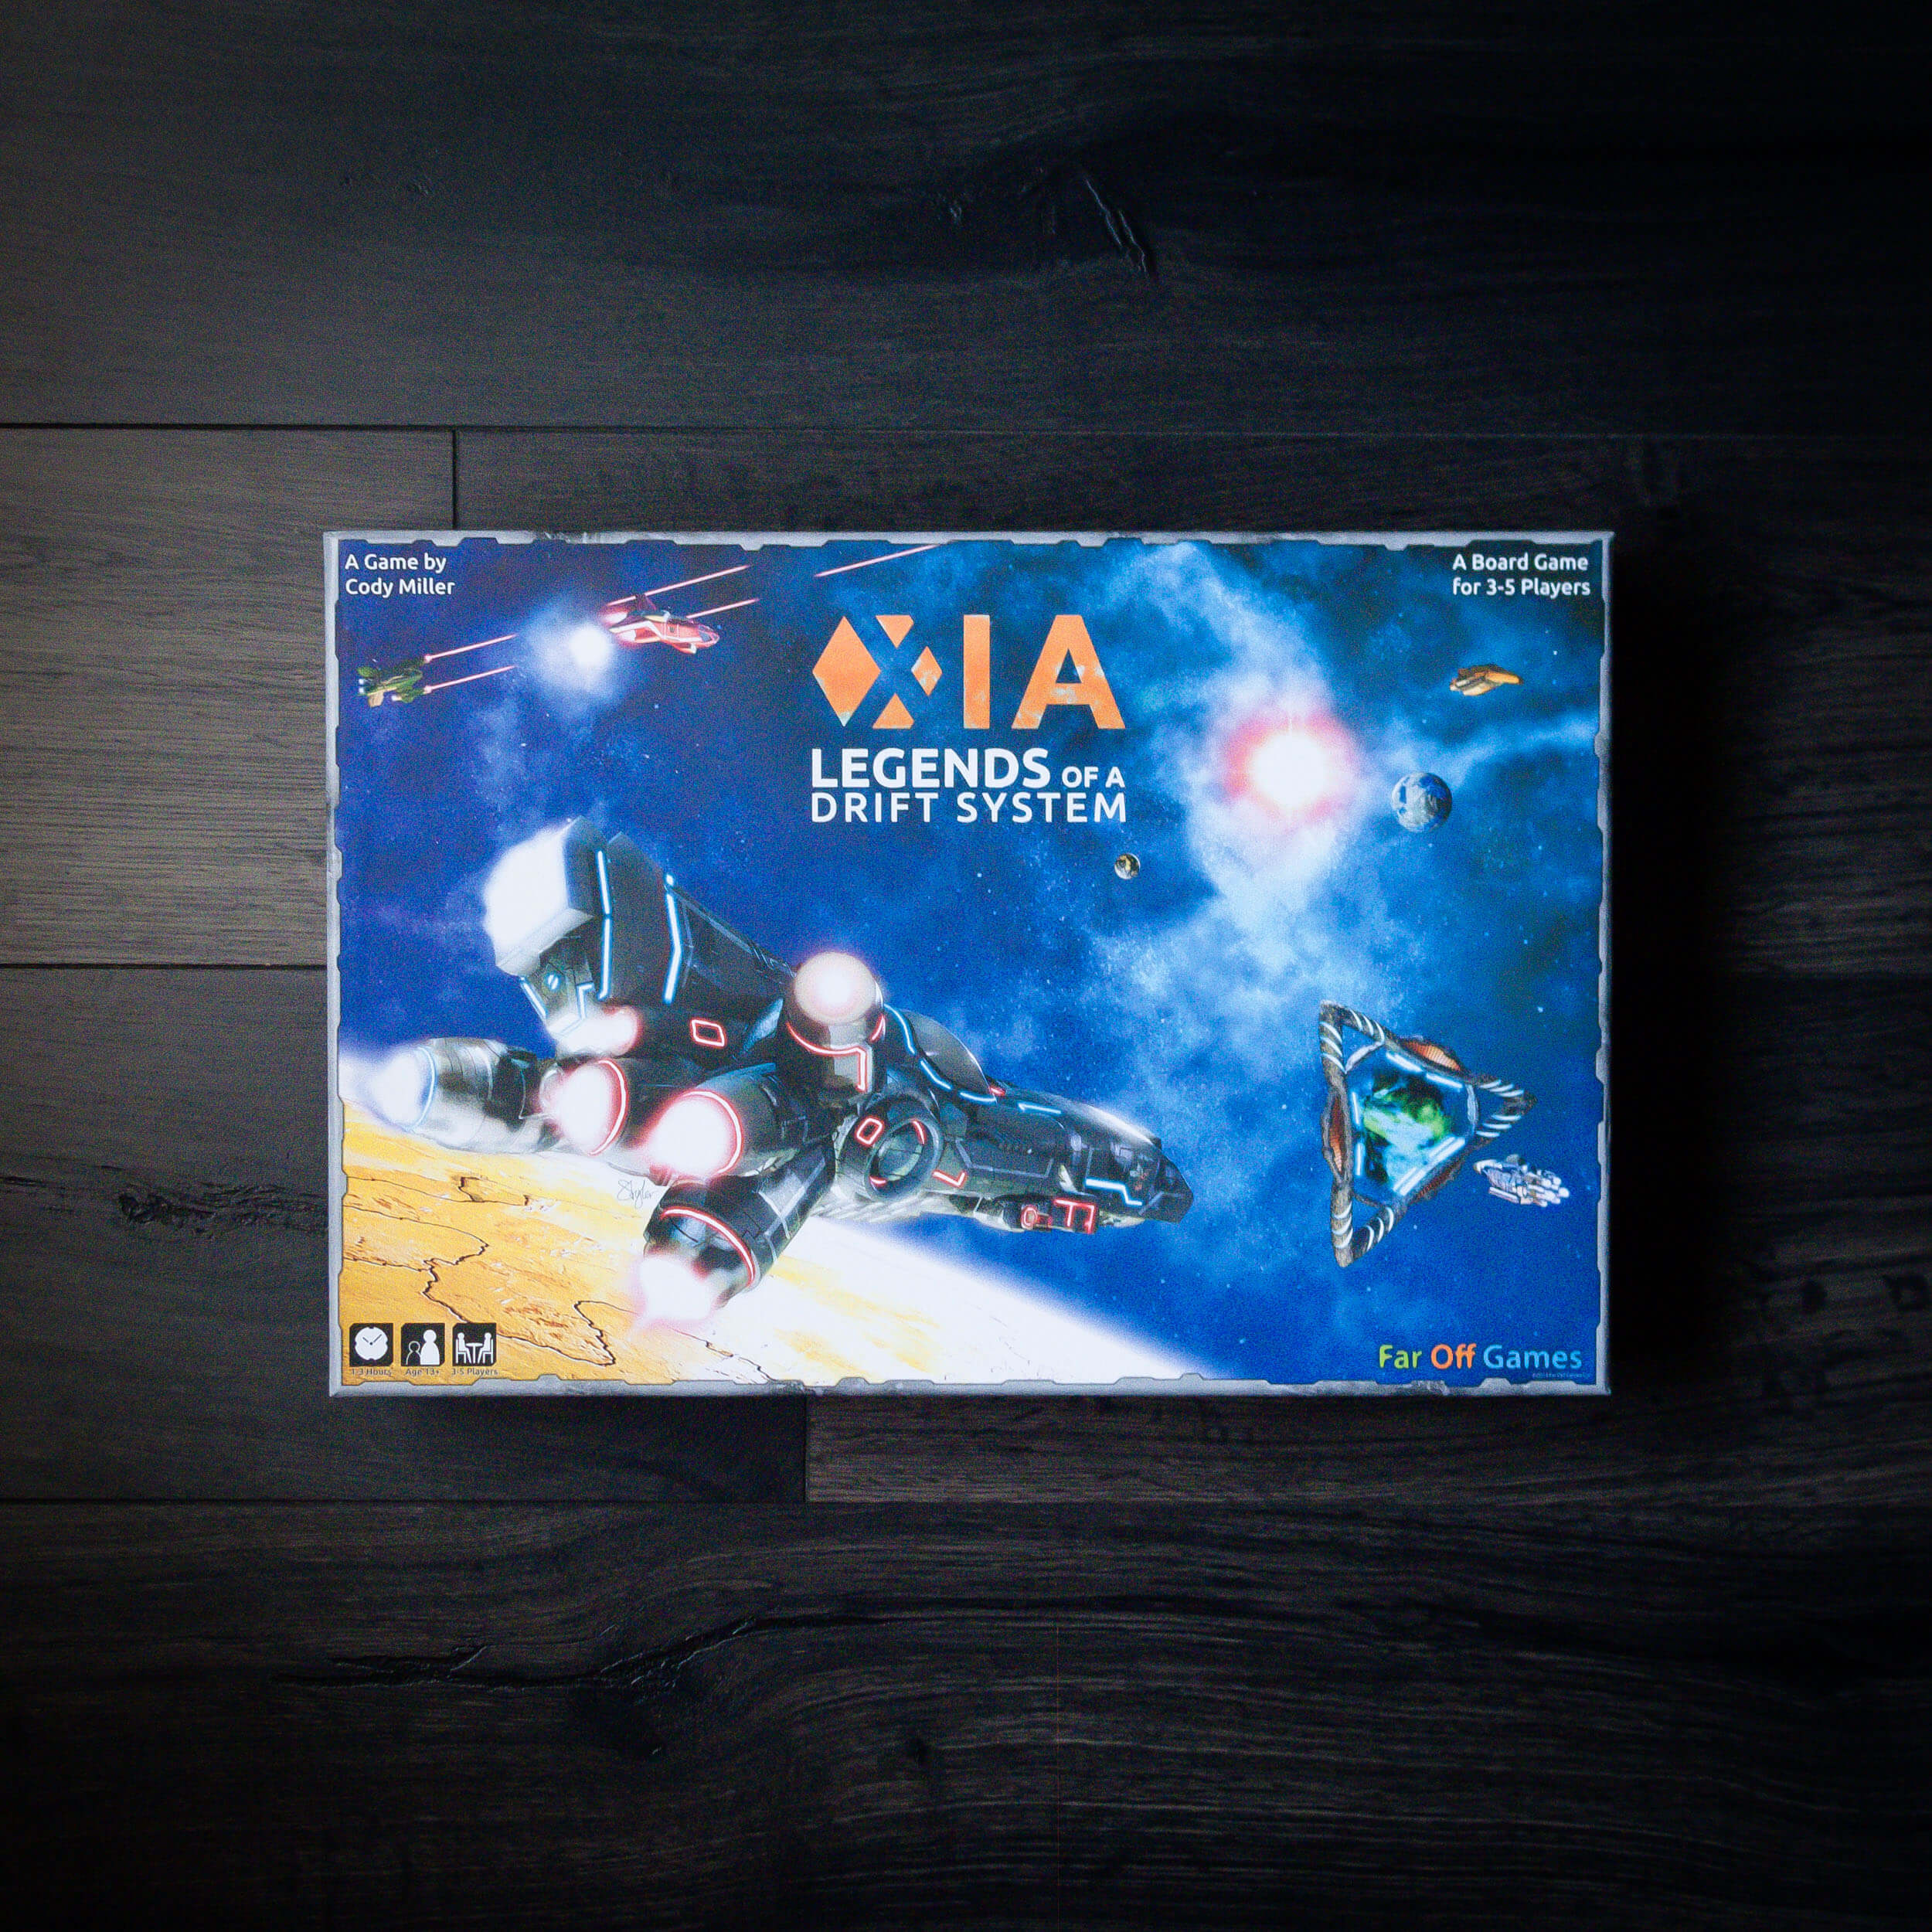 Xia: Legends of a Drift System. Once of the first Kickstarter projects I participated in. Funded June 2013 with $346,772 from 3,293 backers.